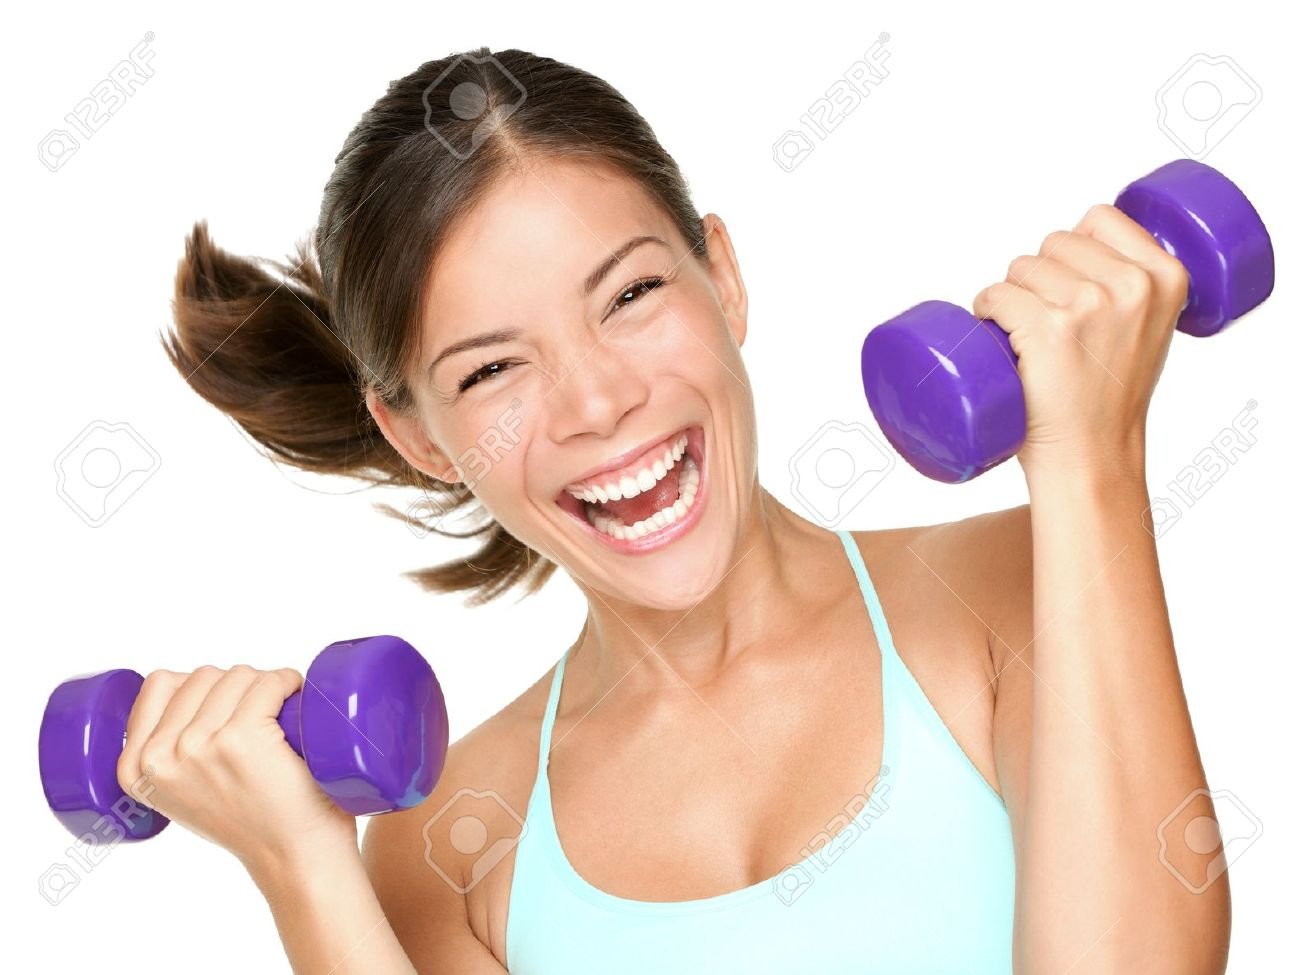 Happy fitness woman lifting dumbbells smiling cheerful, fresh and energetic. Mixed race Asian Caucasian fitness girl training isolated on white background. Stock Photo - 10097661